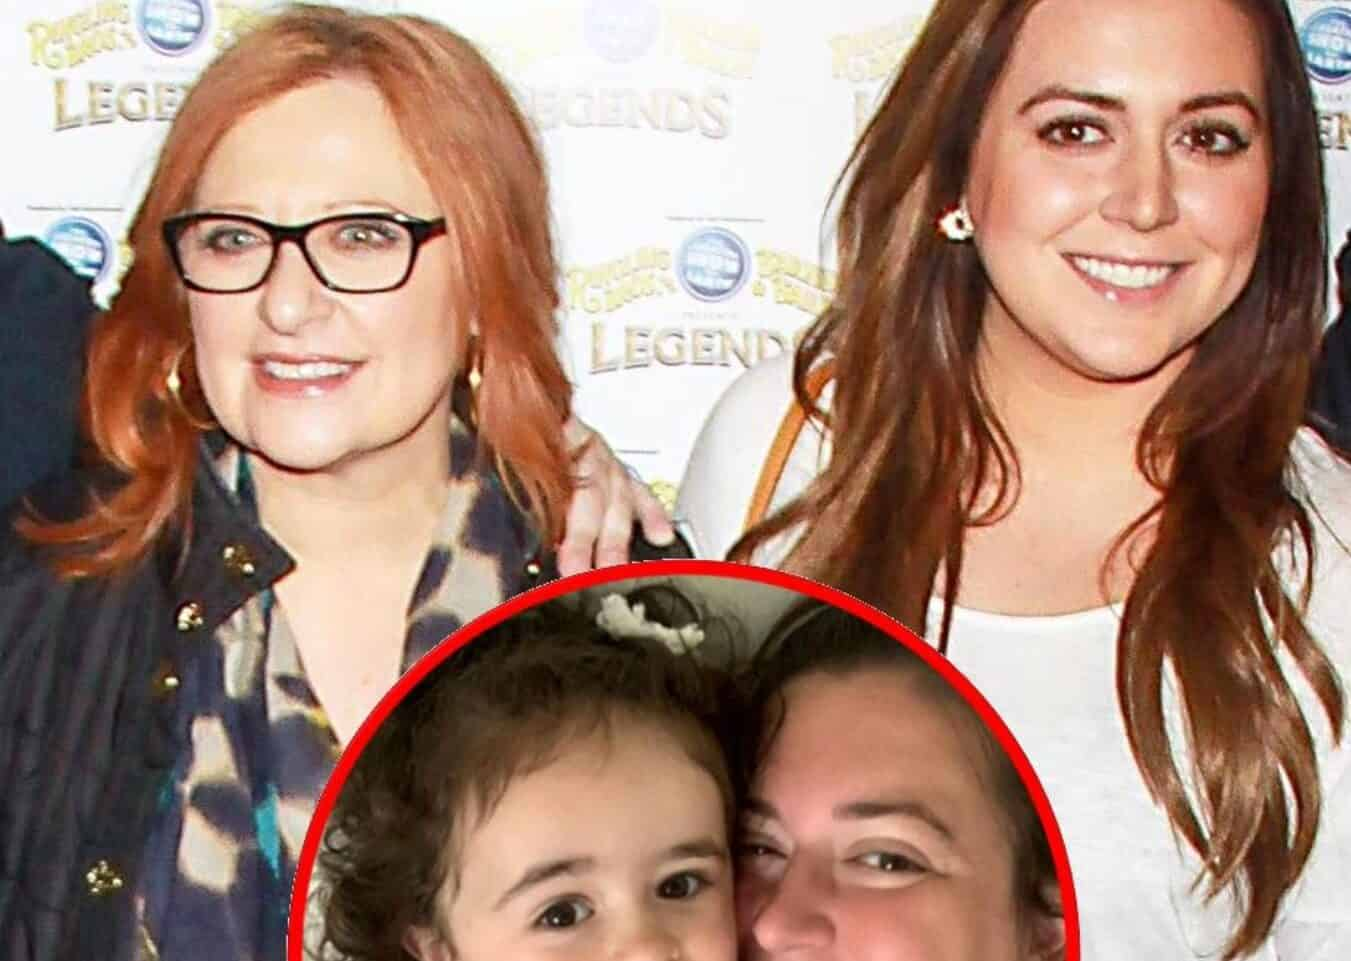 """Ex RHONJ Star Lauren Manzo Announces She Will No Longer Be Sharing Photos of Daughter Markie on Instagram After Receiving """"Insane"""" and """"Mean"""" Comments as Caroline Manzo Also Claps Back at Followers"""